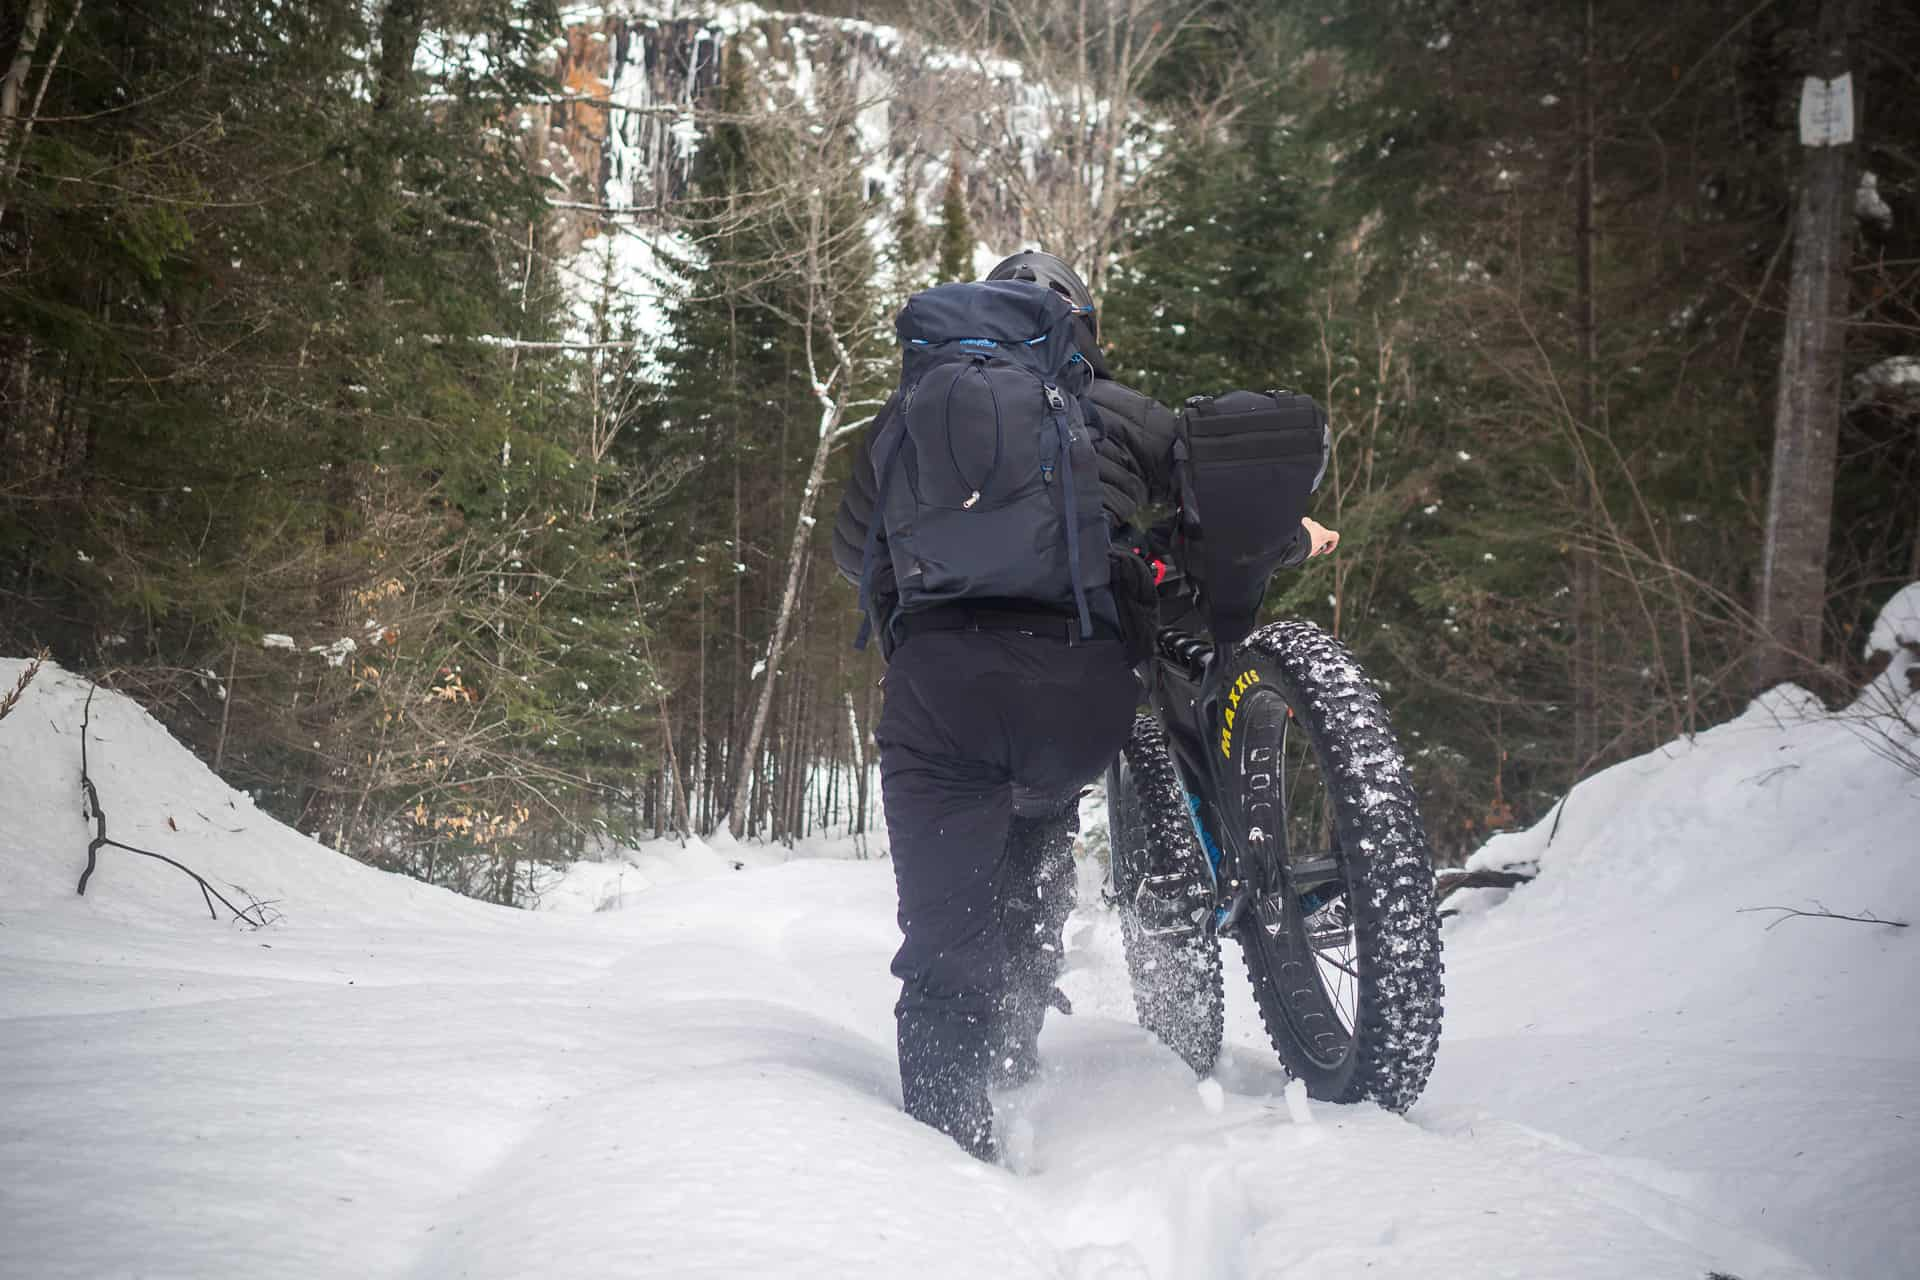 A man pushing his fatbike in deep snow